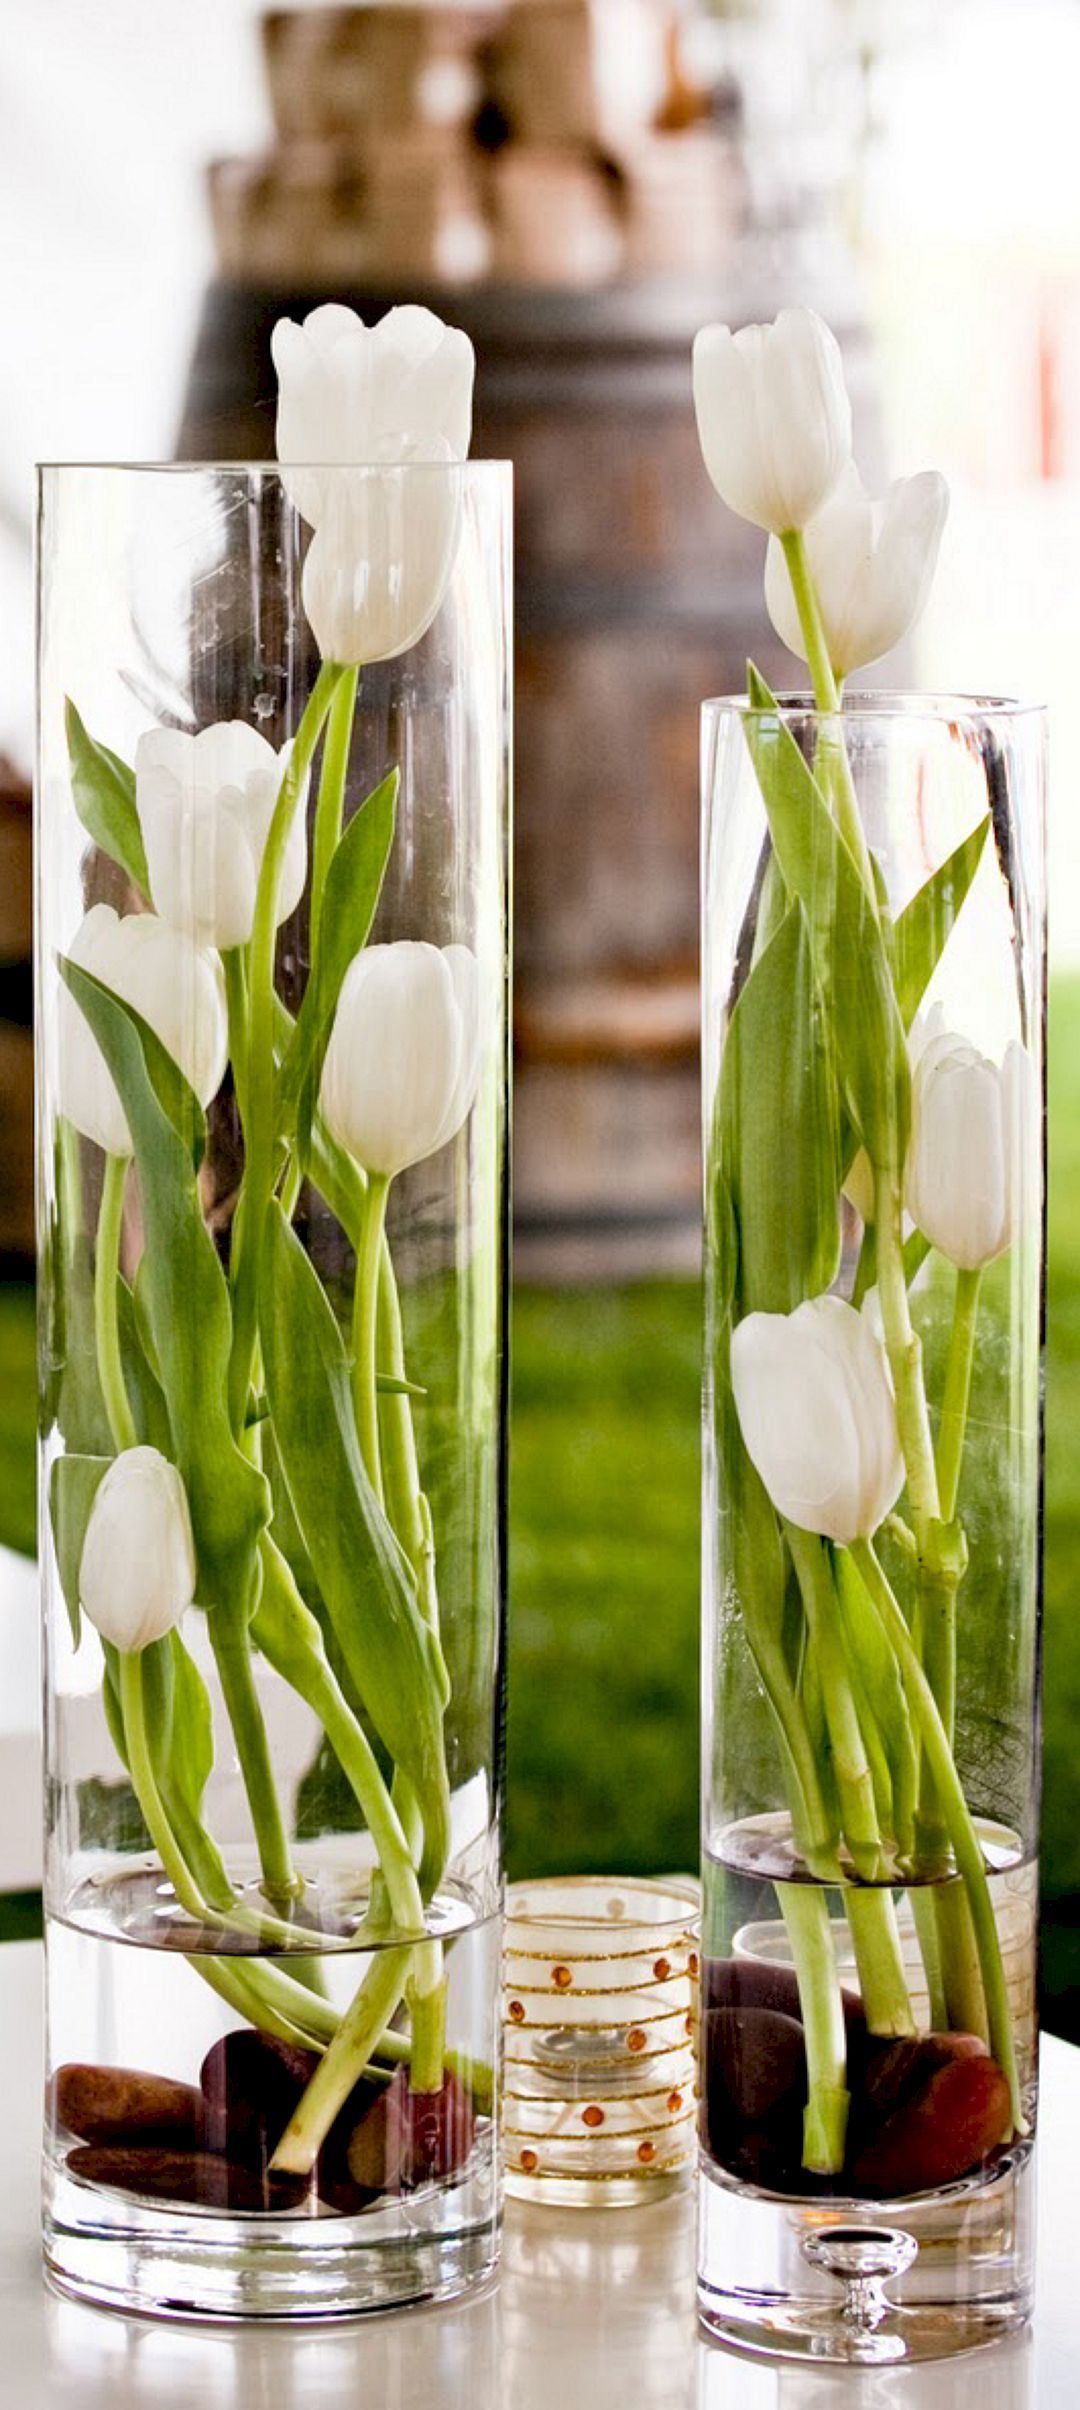 image arrangement tulip distressed over in a arranged tulips vase white background isolated pink edit flower stock photo aluminum